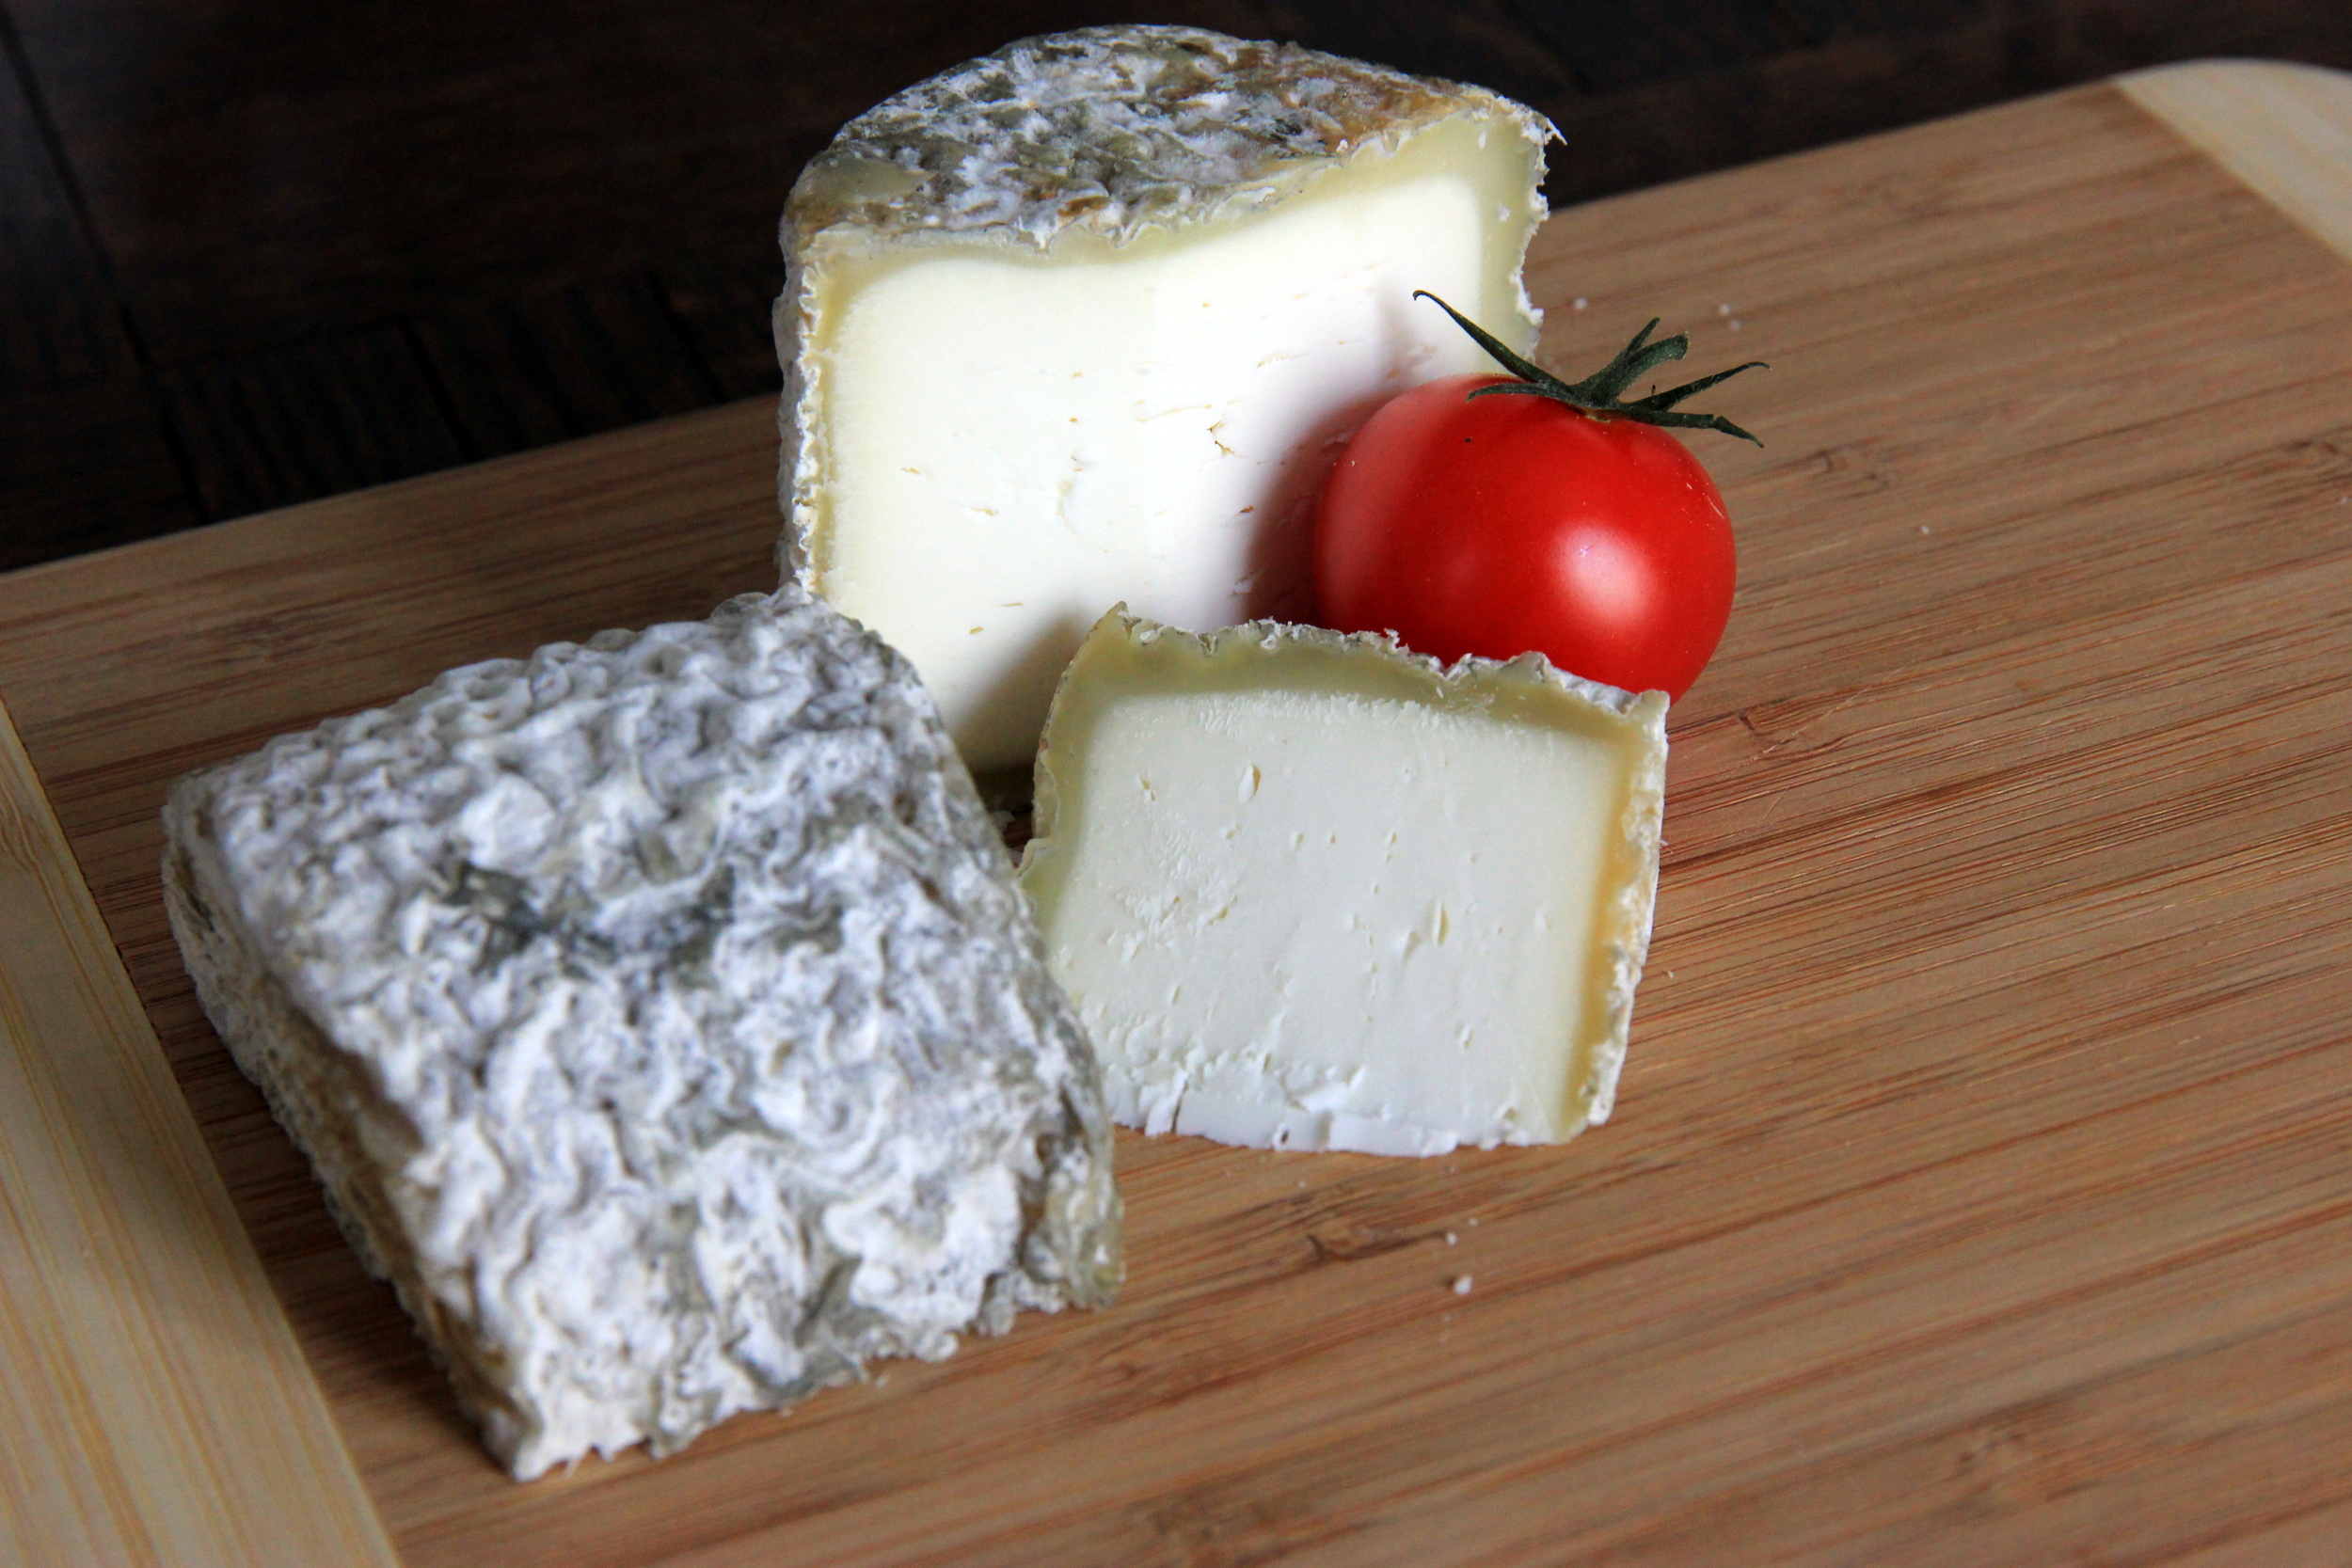 La Bonde de Gâtine, a delicious goat cheese that fills your mouth with an incredible warmth.